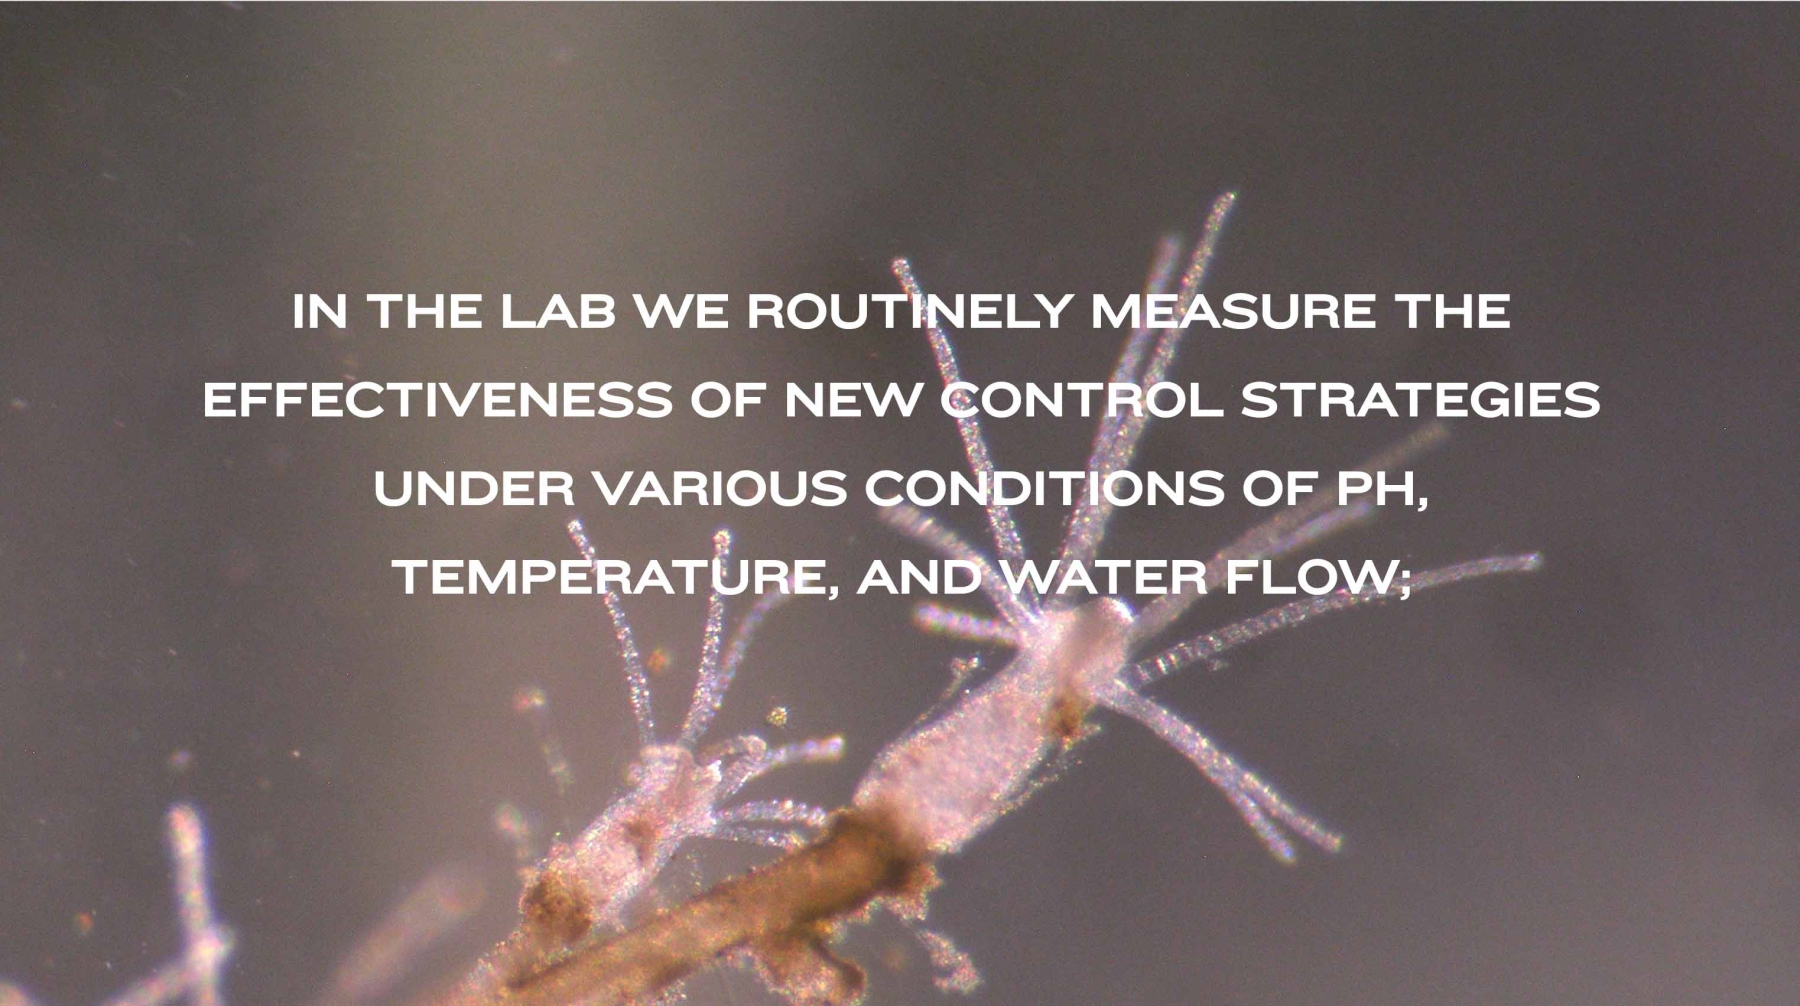 IN THE LAB WE ROUTINELY MEASURE THE EFFECTIVENESS OF NEW CONTROL STRATEGIES UNDER VARIOUS CONDITIONS OF PH, TEMPERATURE, AND WATER FLOW;